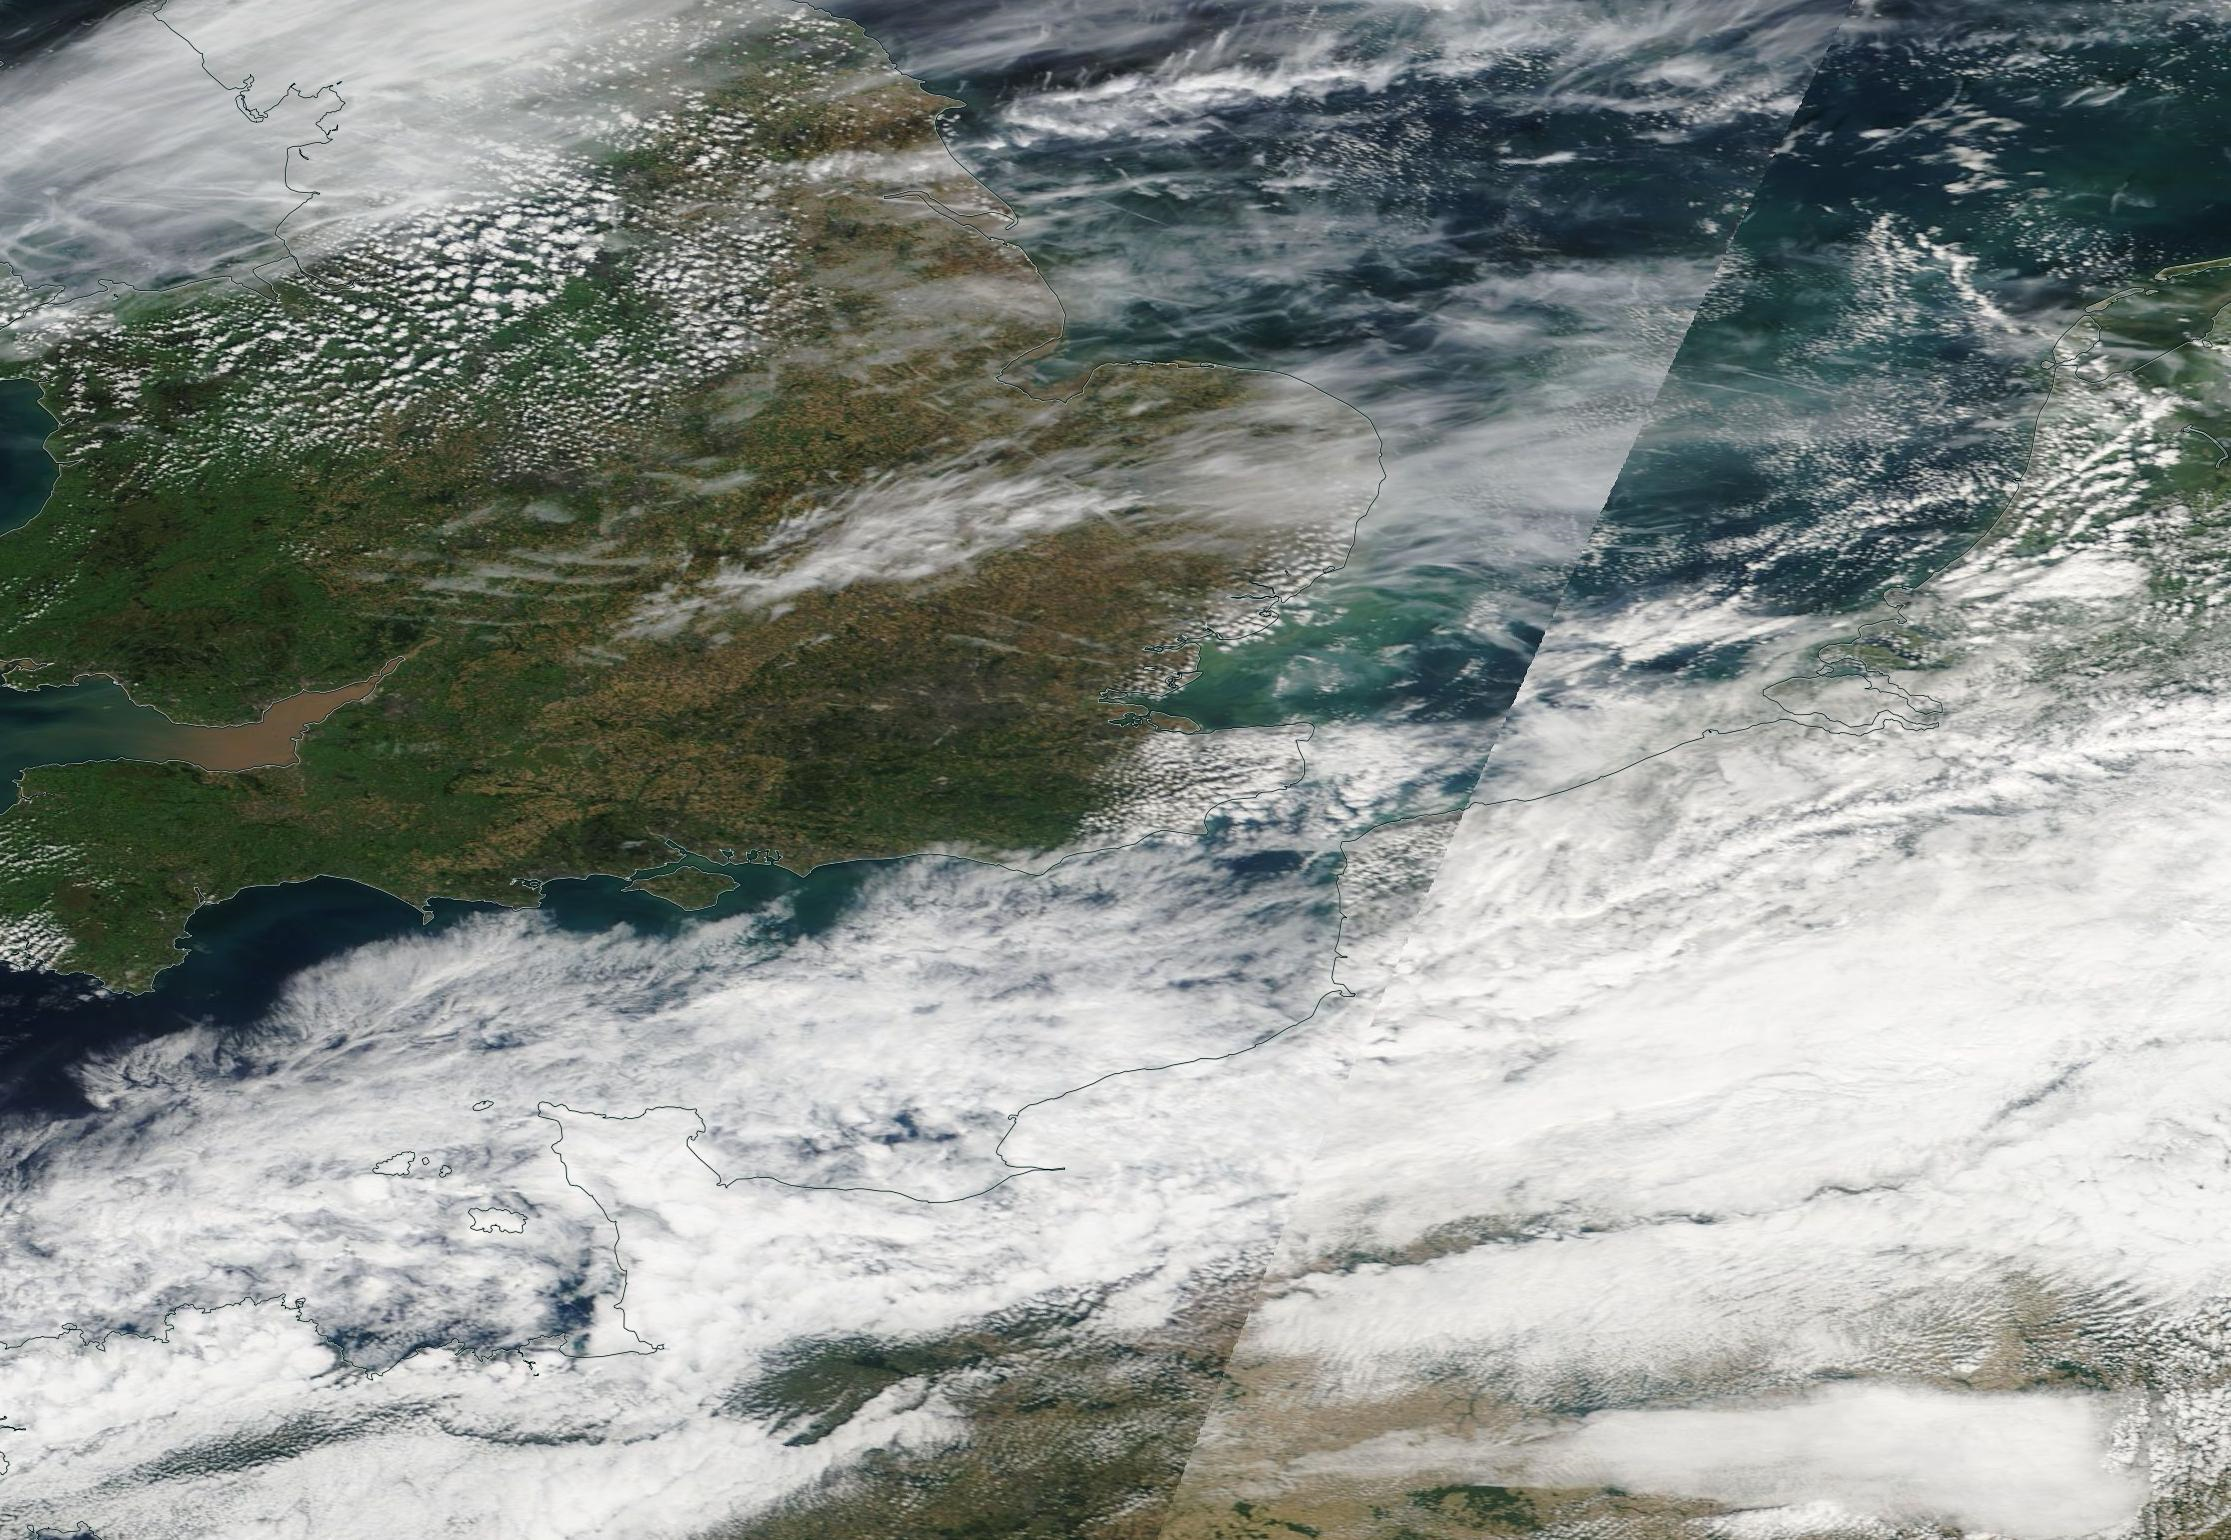 second version of southern England chemtrails published by NASA for 13th Sept 2019 ... https://go.nasa.gov/31ktrBi